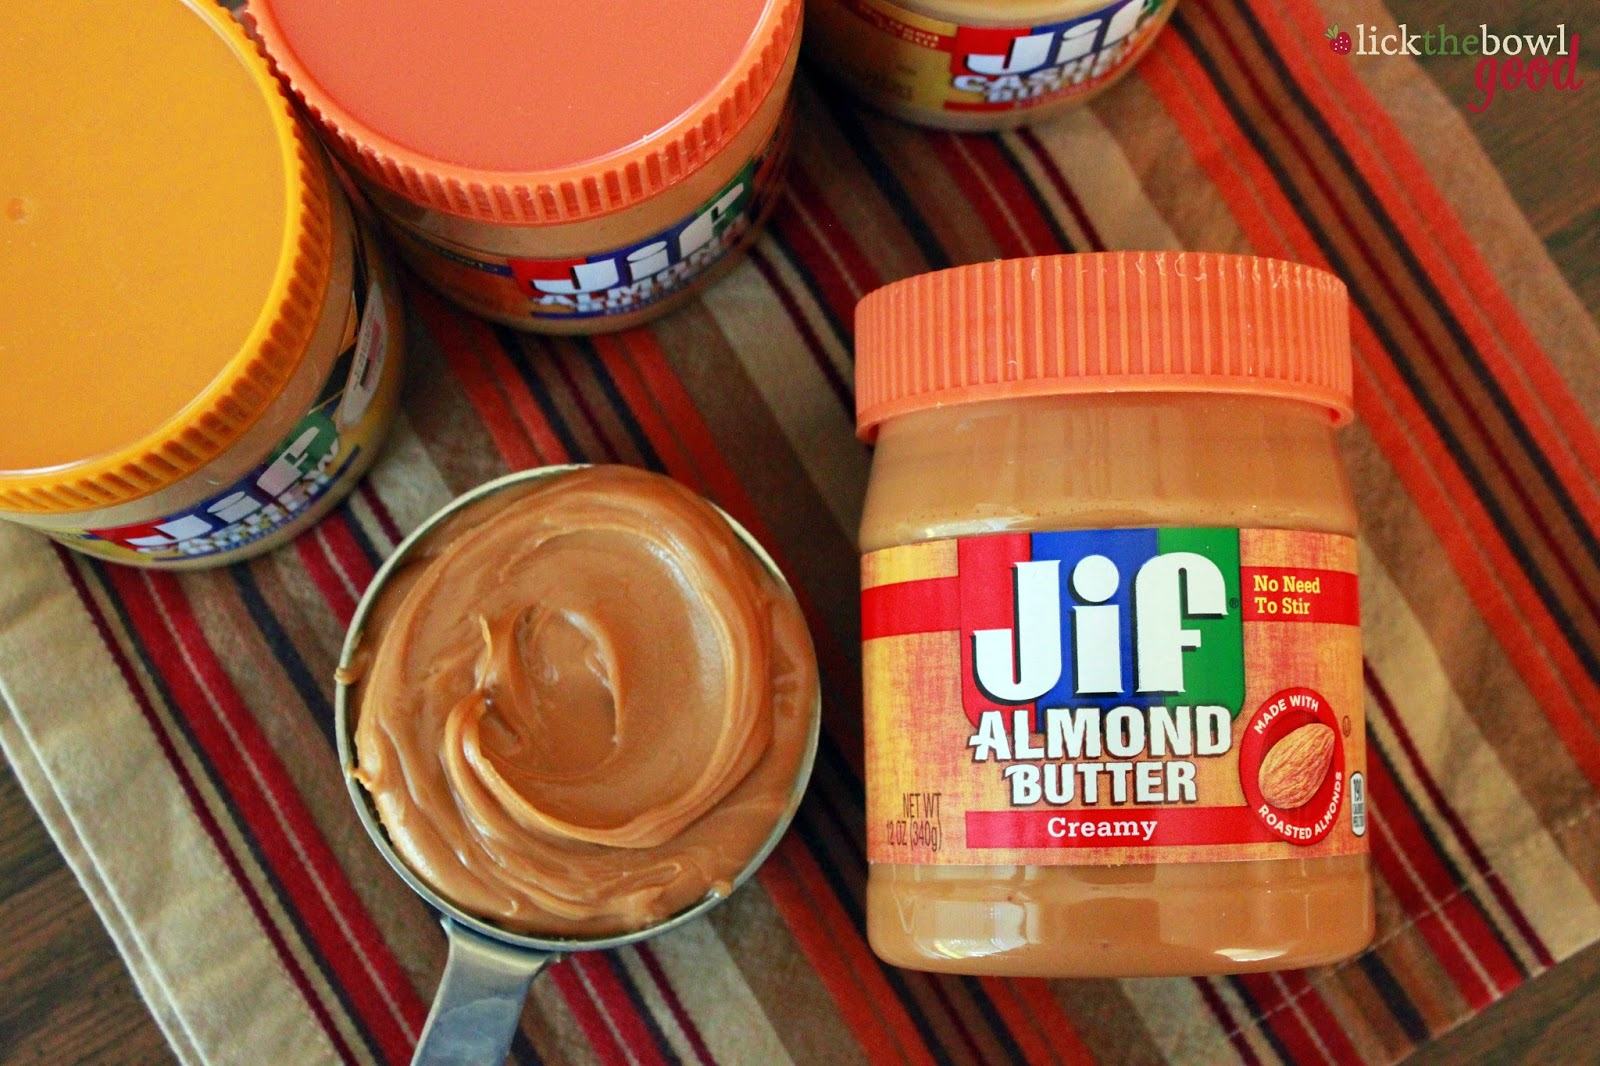 almond butter, justin's almond butter, how to make almond butter, almond butter vs peanut butter, almond butter nutrition, almond butter recipe, almond butter cookies, trader joe's almond butter, almond butter benefits, homemade almond butter, maranatha almond butter, can dogs eat almond butter, whole30 almond butter, almond butter nutrition facts, is almond butter good for you, best almond butter, is almond butter healthy, almond butter smoothie, organic almond butter, nature valley almond butter biscuits, almond butter substitute, peanut butter vs almond butter, raw almond butter, vitamix almond butter, almond flour peanut butter cookies, barney almond butter, costco almond butter, carbs in almond butter, calories in almond butter, almond butter walmart, almond butter protein, powdered almond butter, is almond butter than peanut butter, make almond butter, what is almond butter